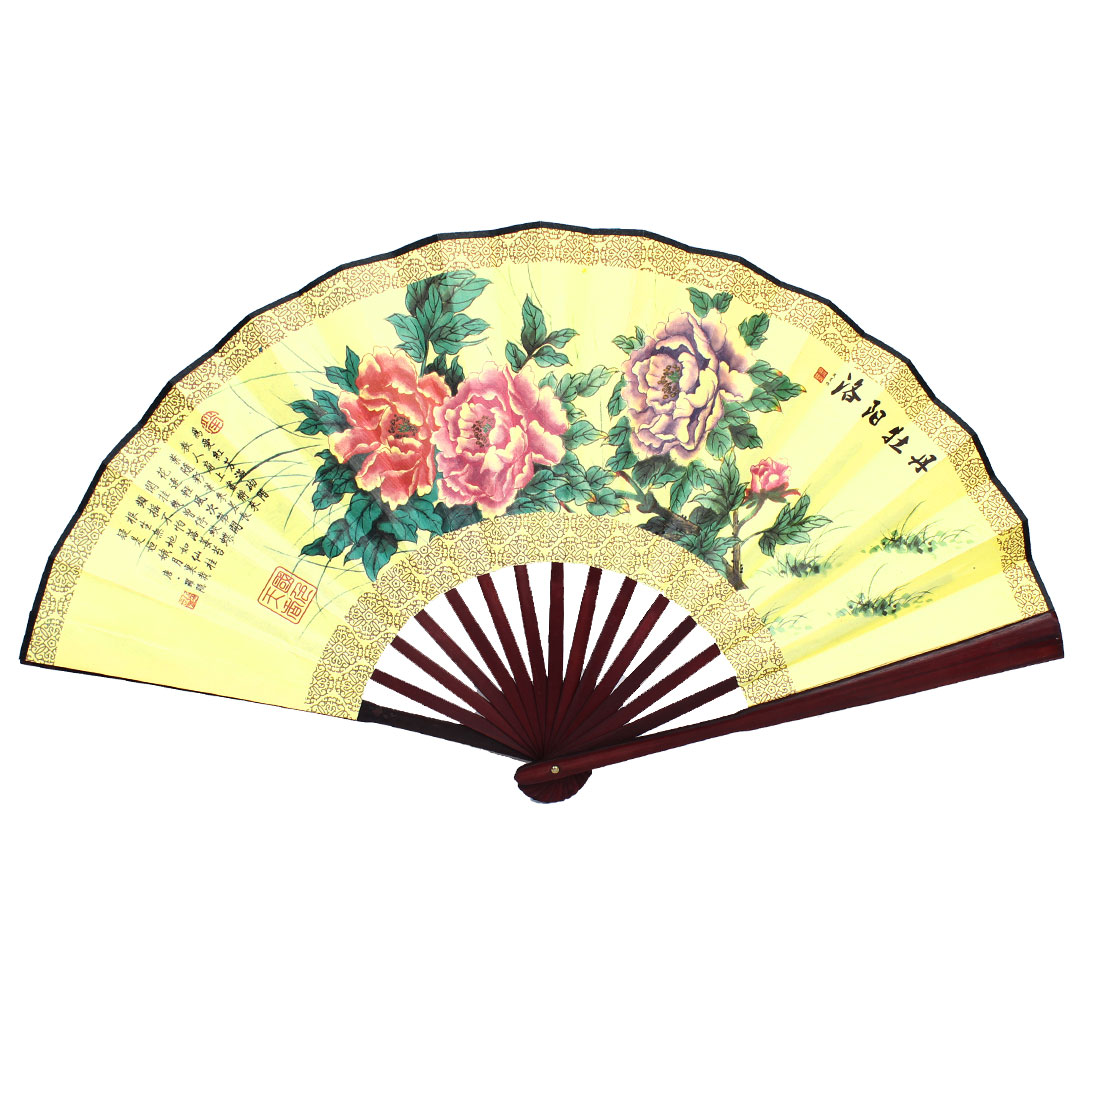 Vintage Style Chinese Painting Poem Pattern Print Fabric Bamboo Folding Hand Fan